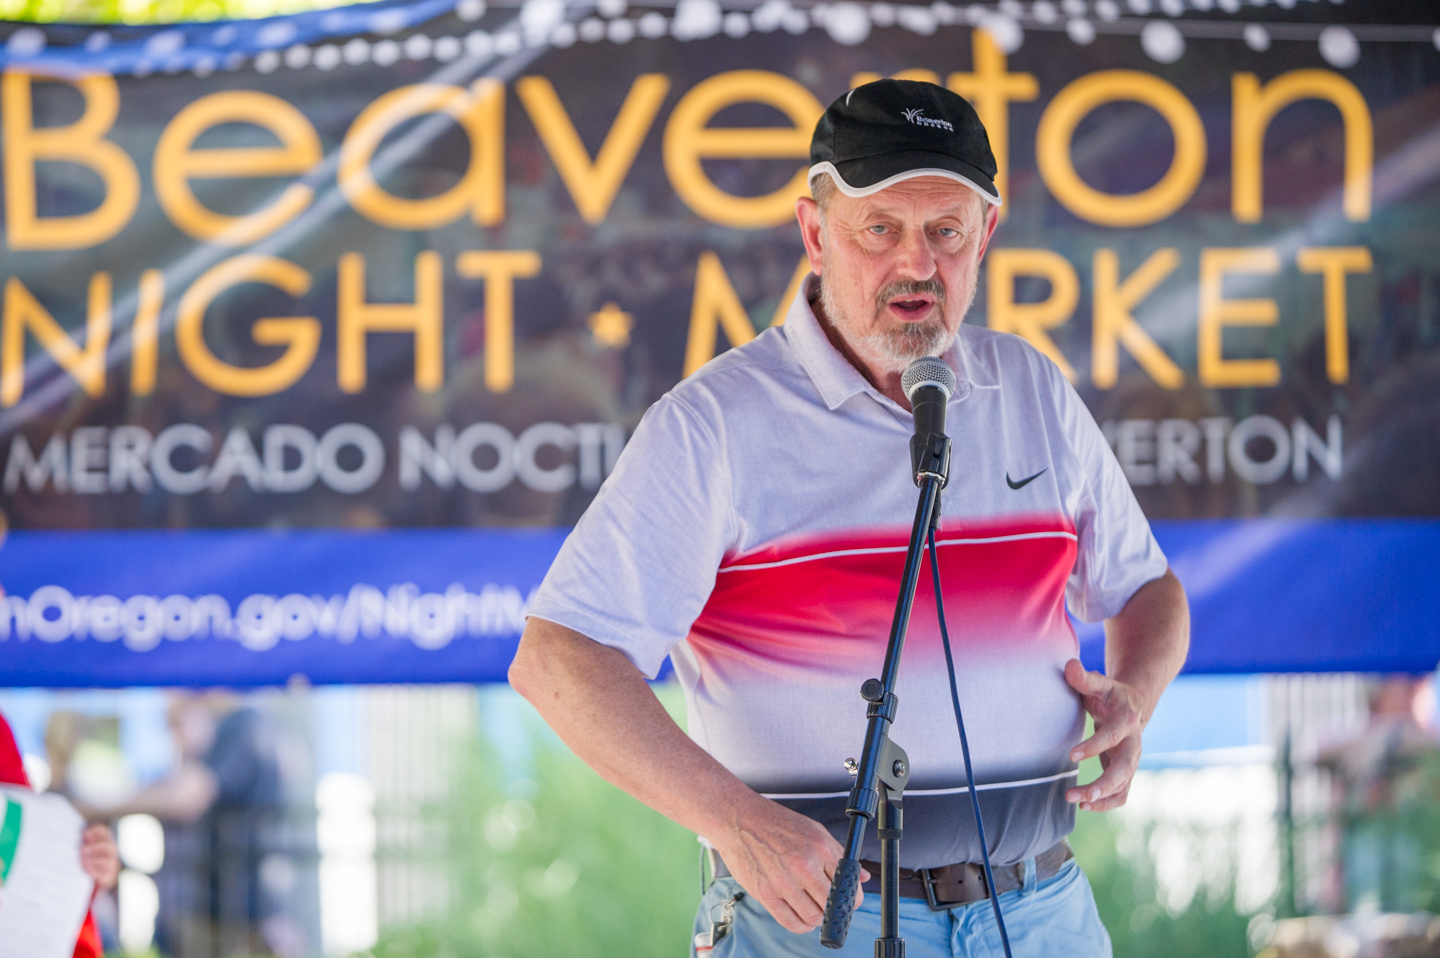 20170722-BeaveronNightMarket_July-373